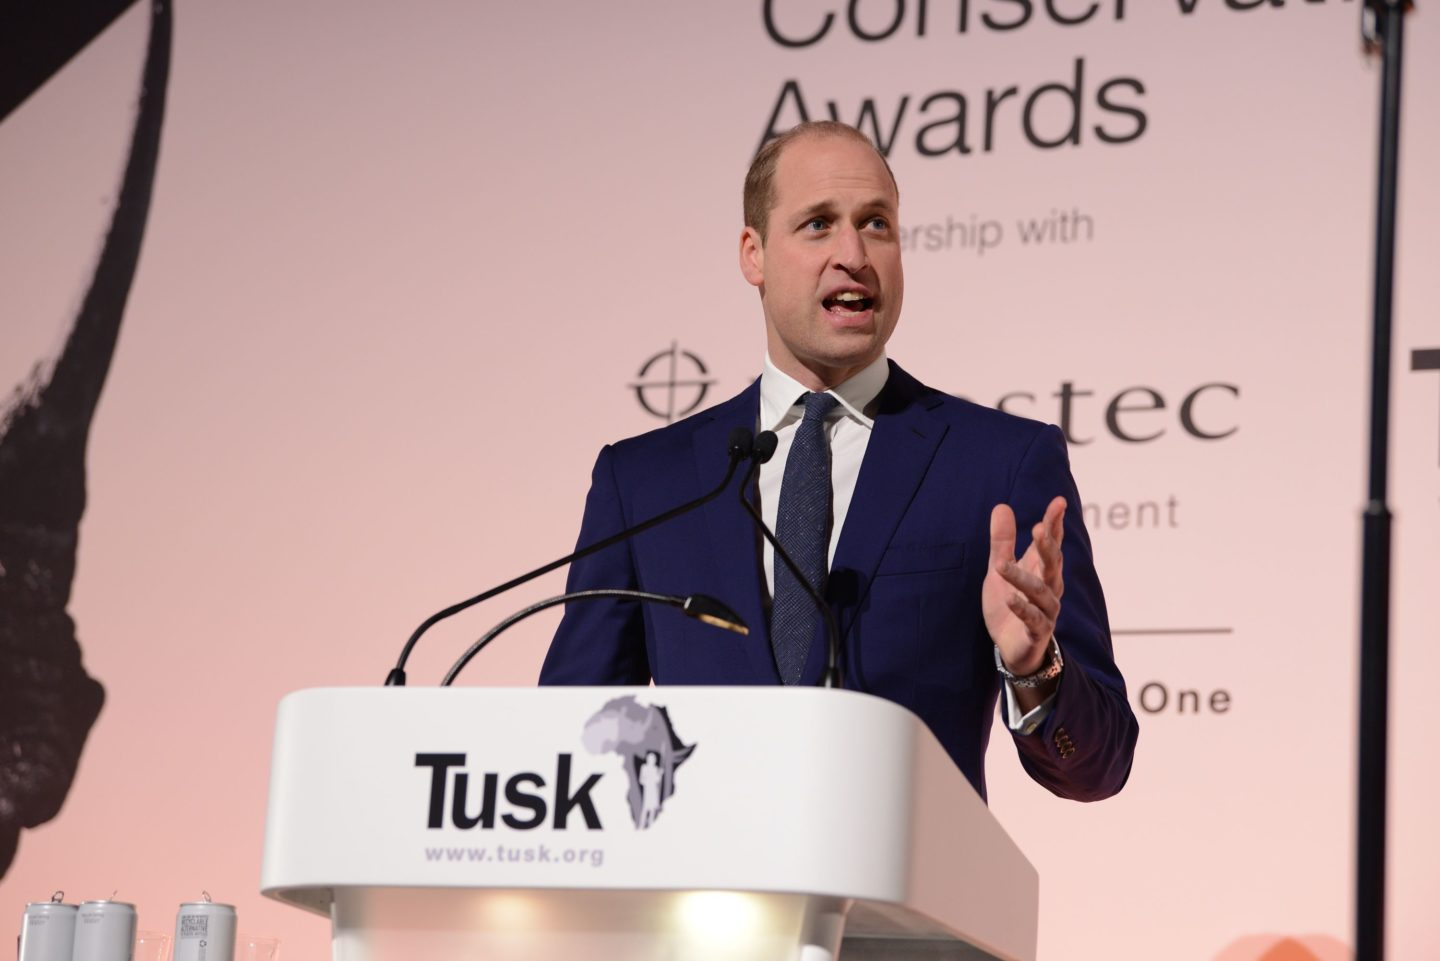 Prince William paying tribute to the finalists